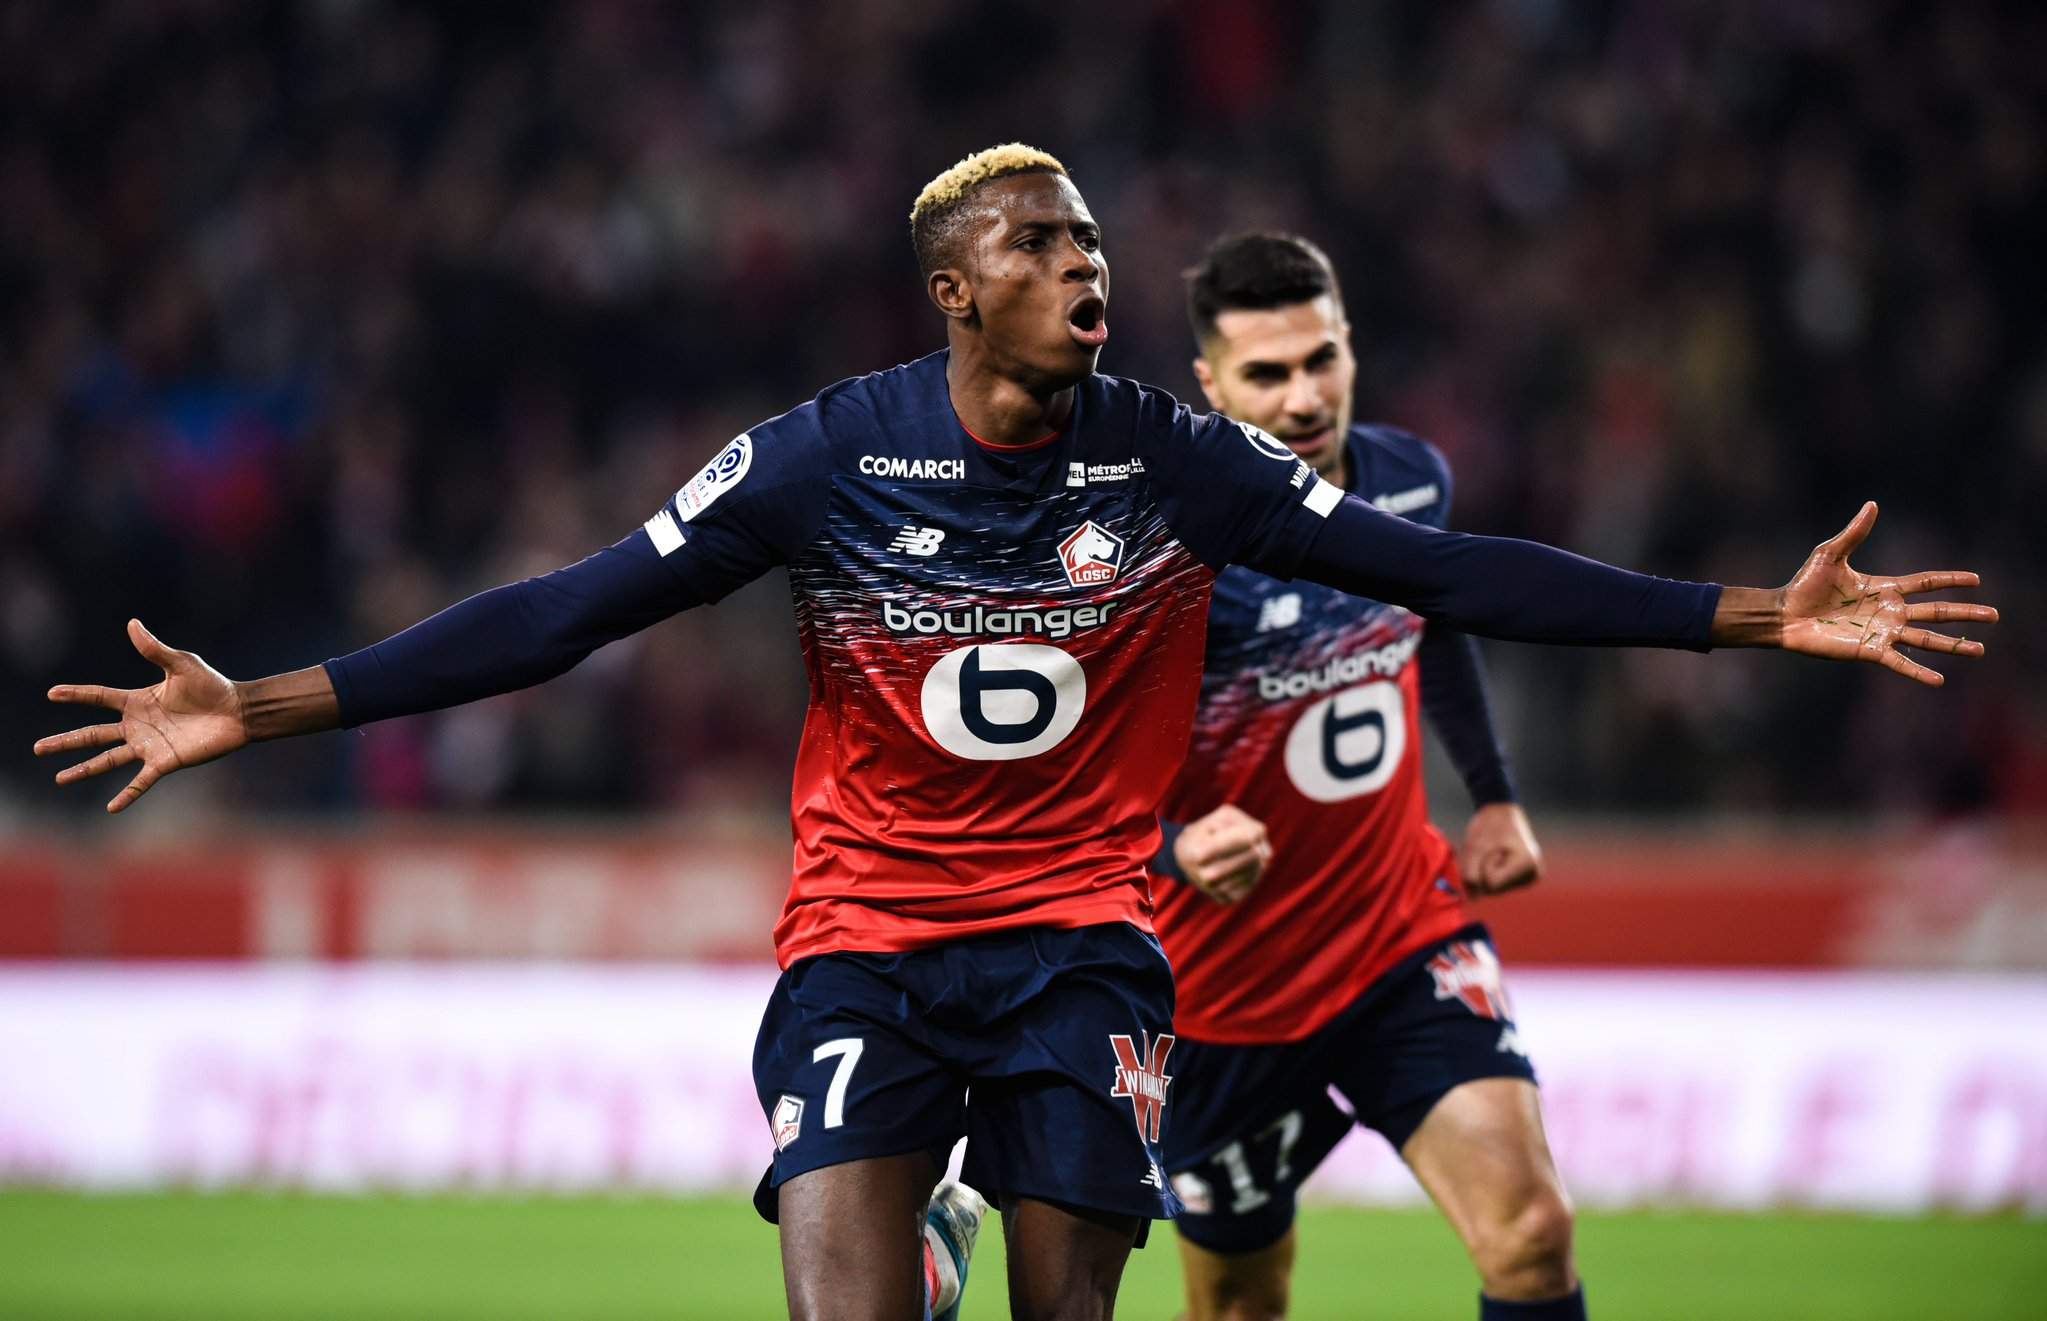 Osimhen Takes a Rest, Out of Monaco – Lille Saturday's Clash